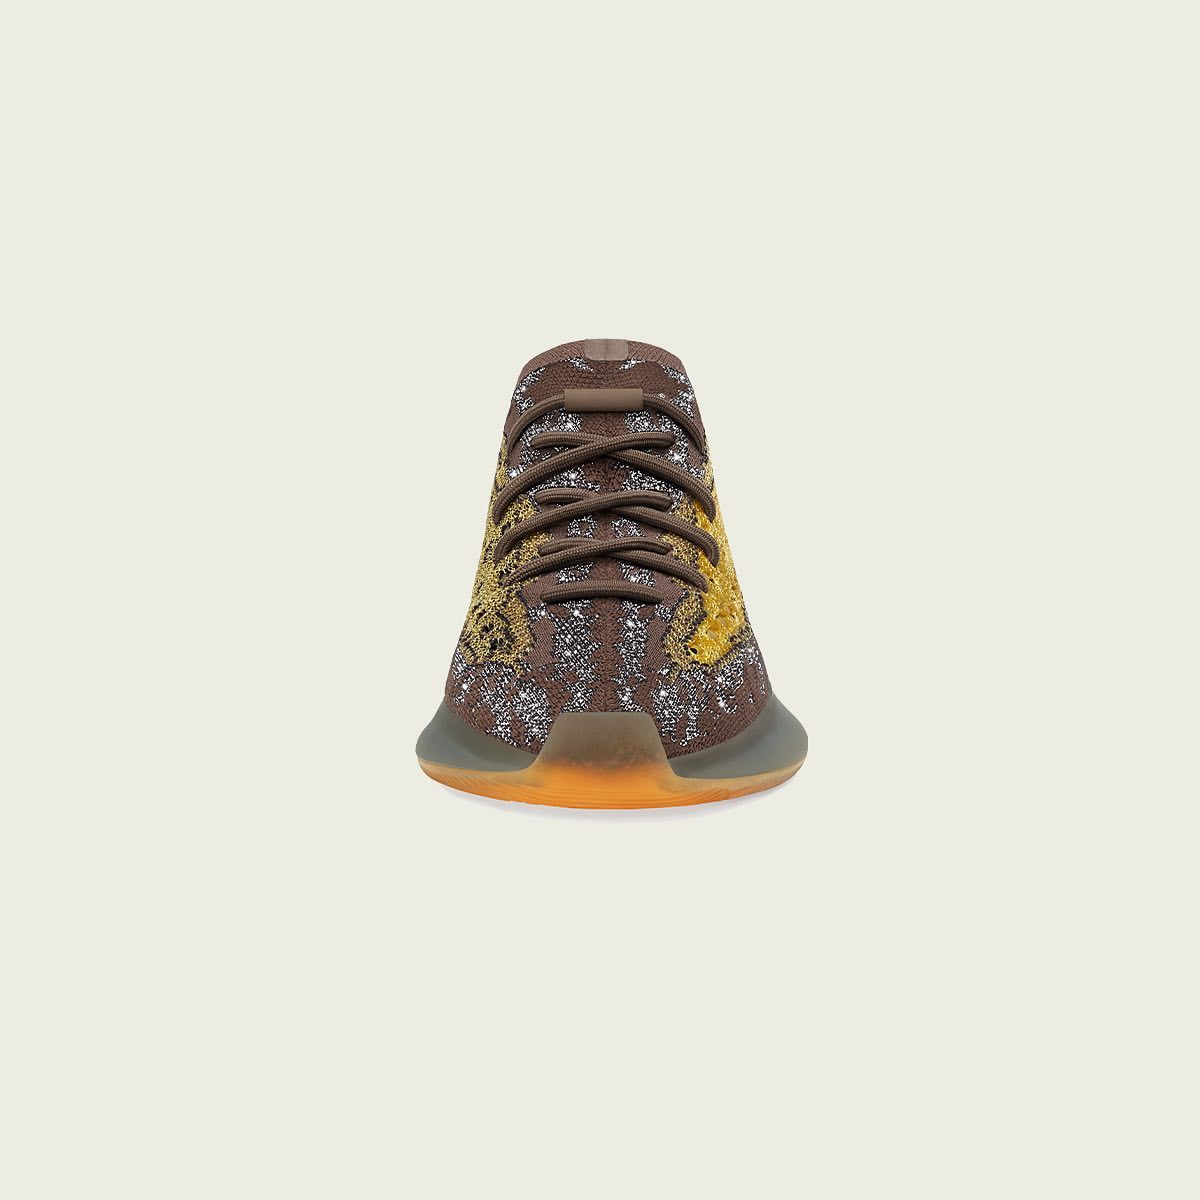 ADIDAS YEEZY BOOST 380 LMNTE H02541